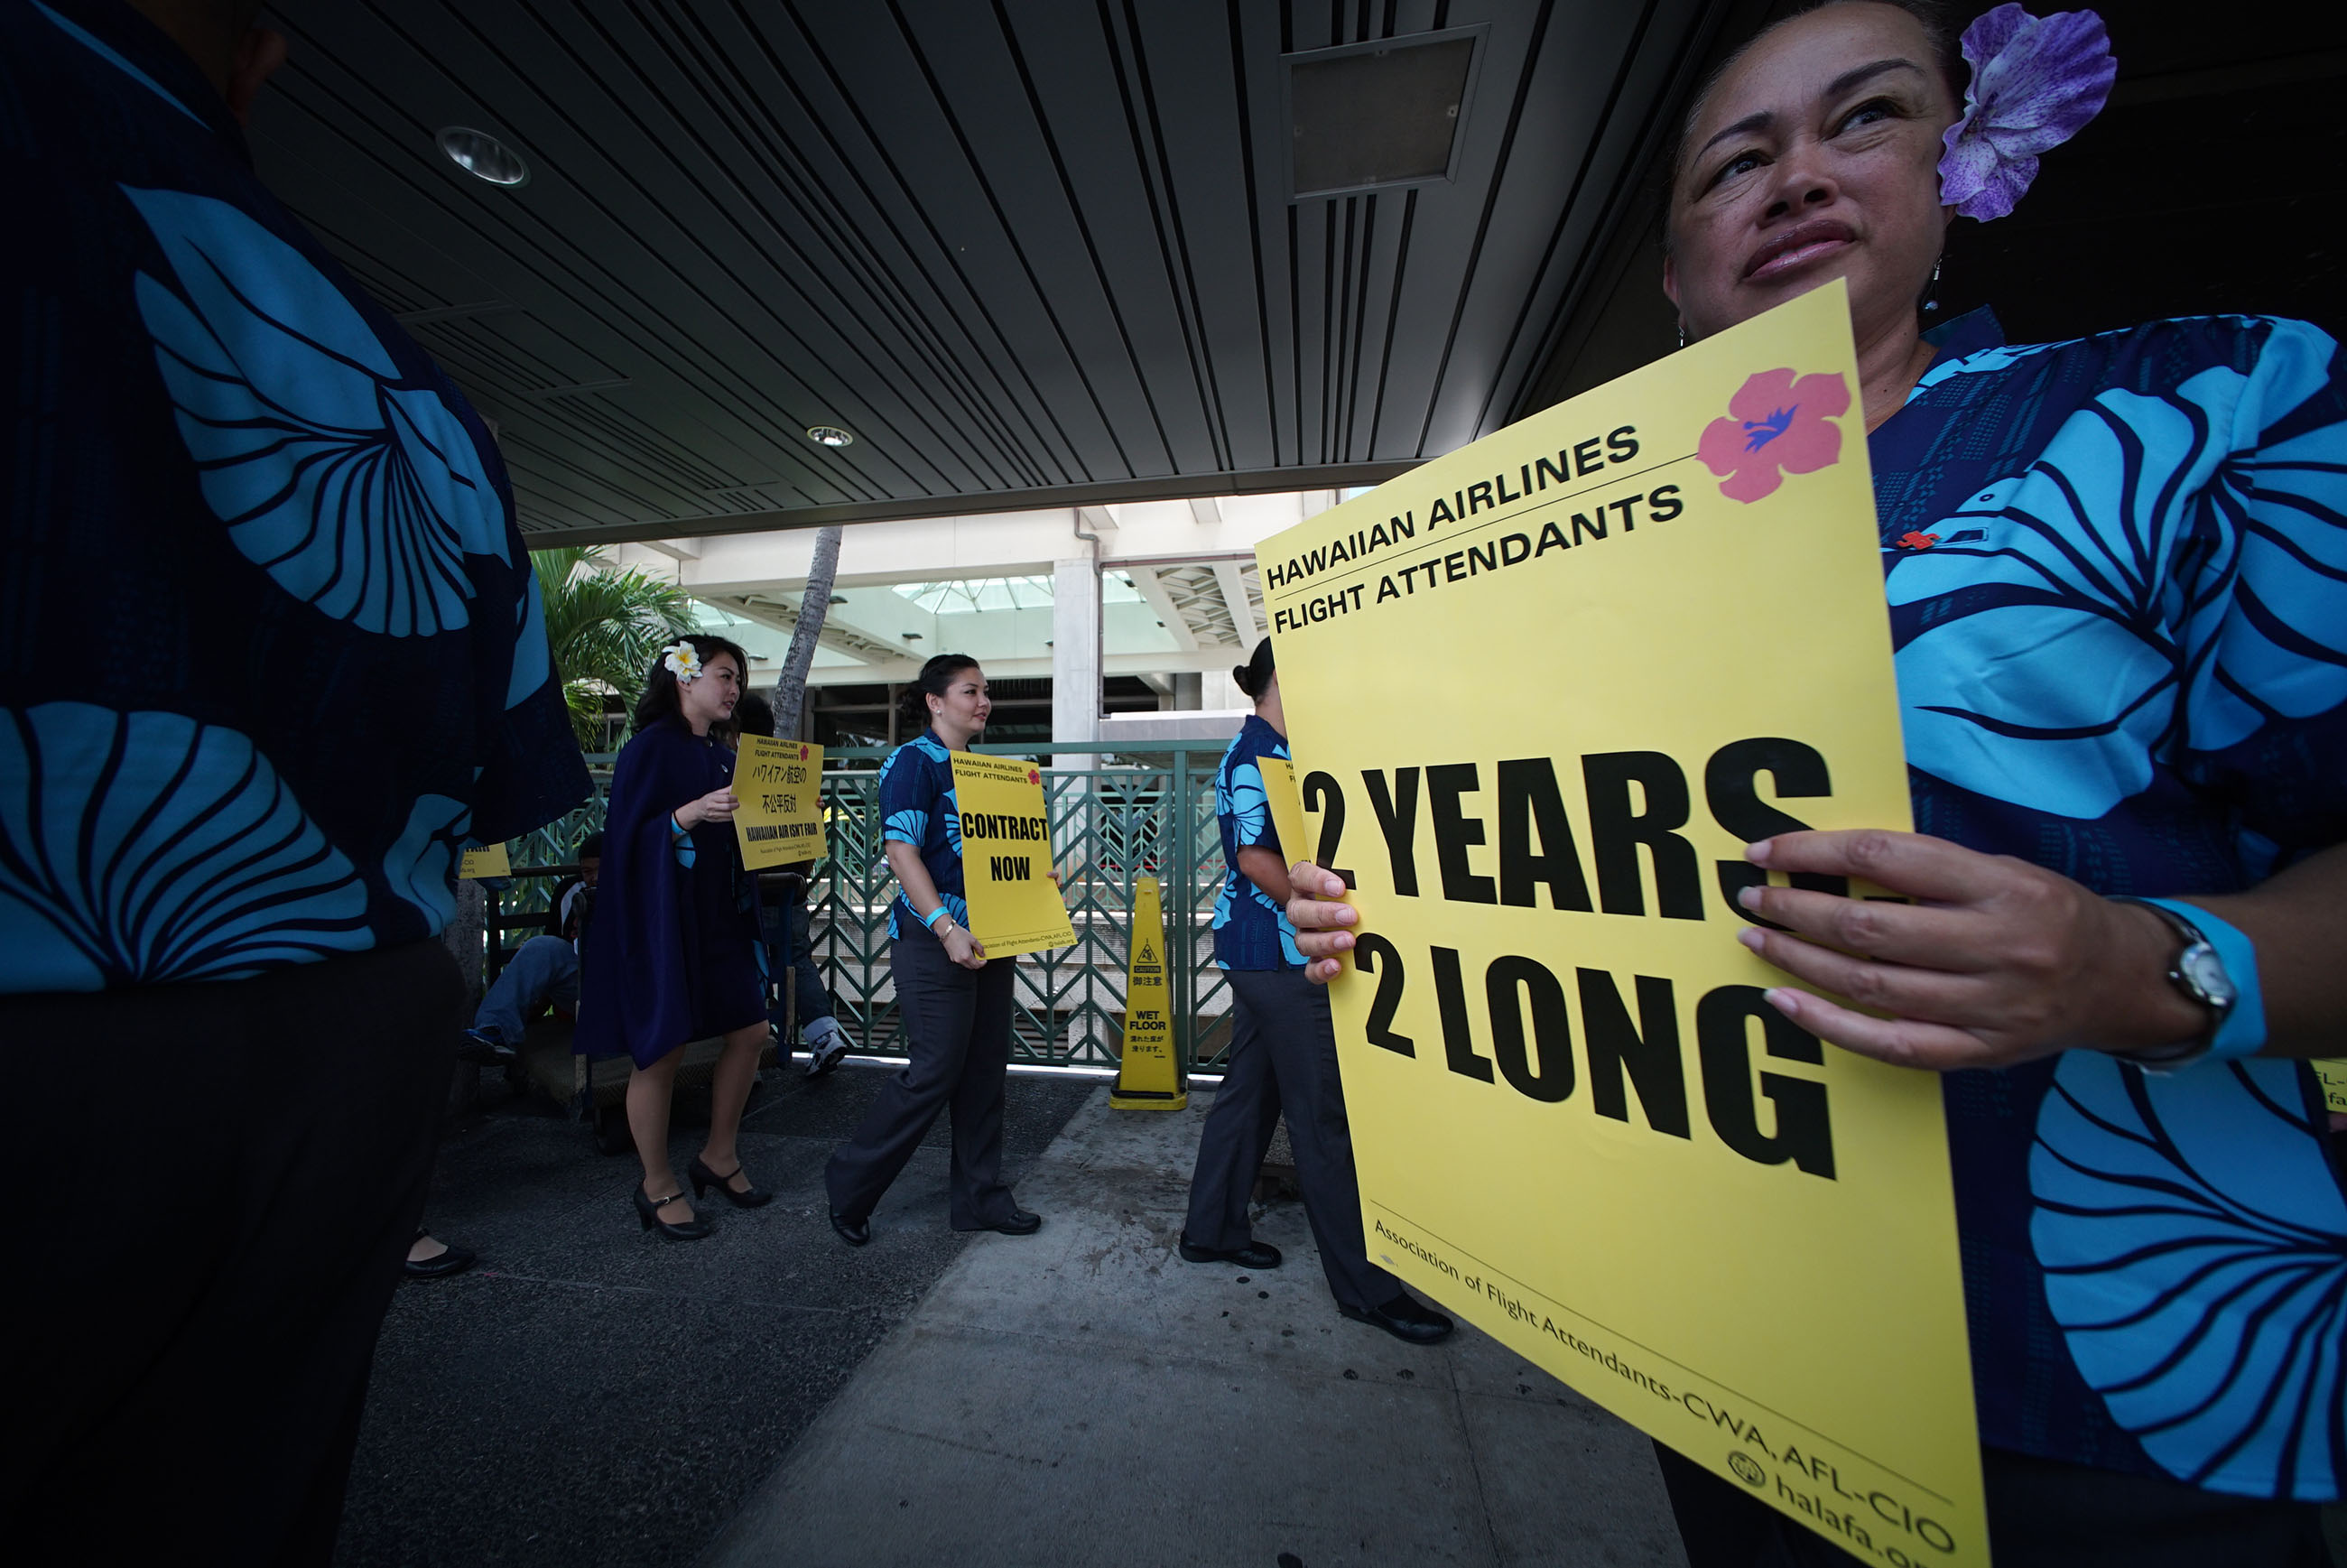 Hawaiian Airlines Flight attendants and supporters hold signs at the Daniel K Inouye International Airport.